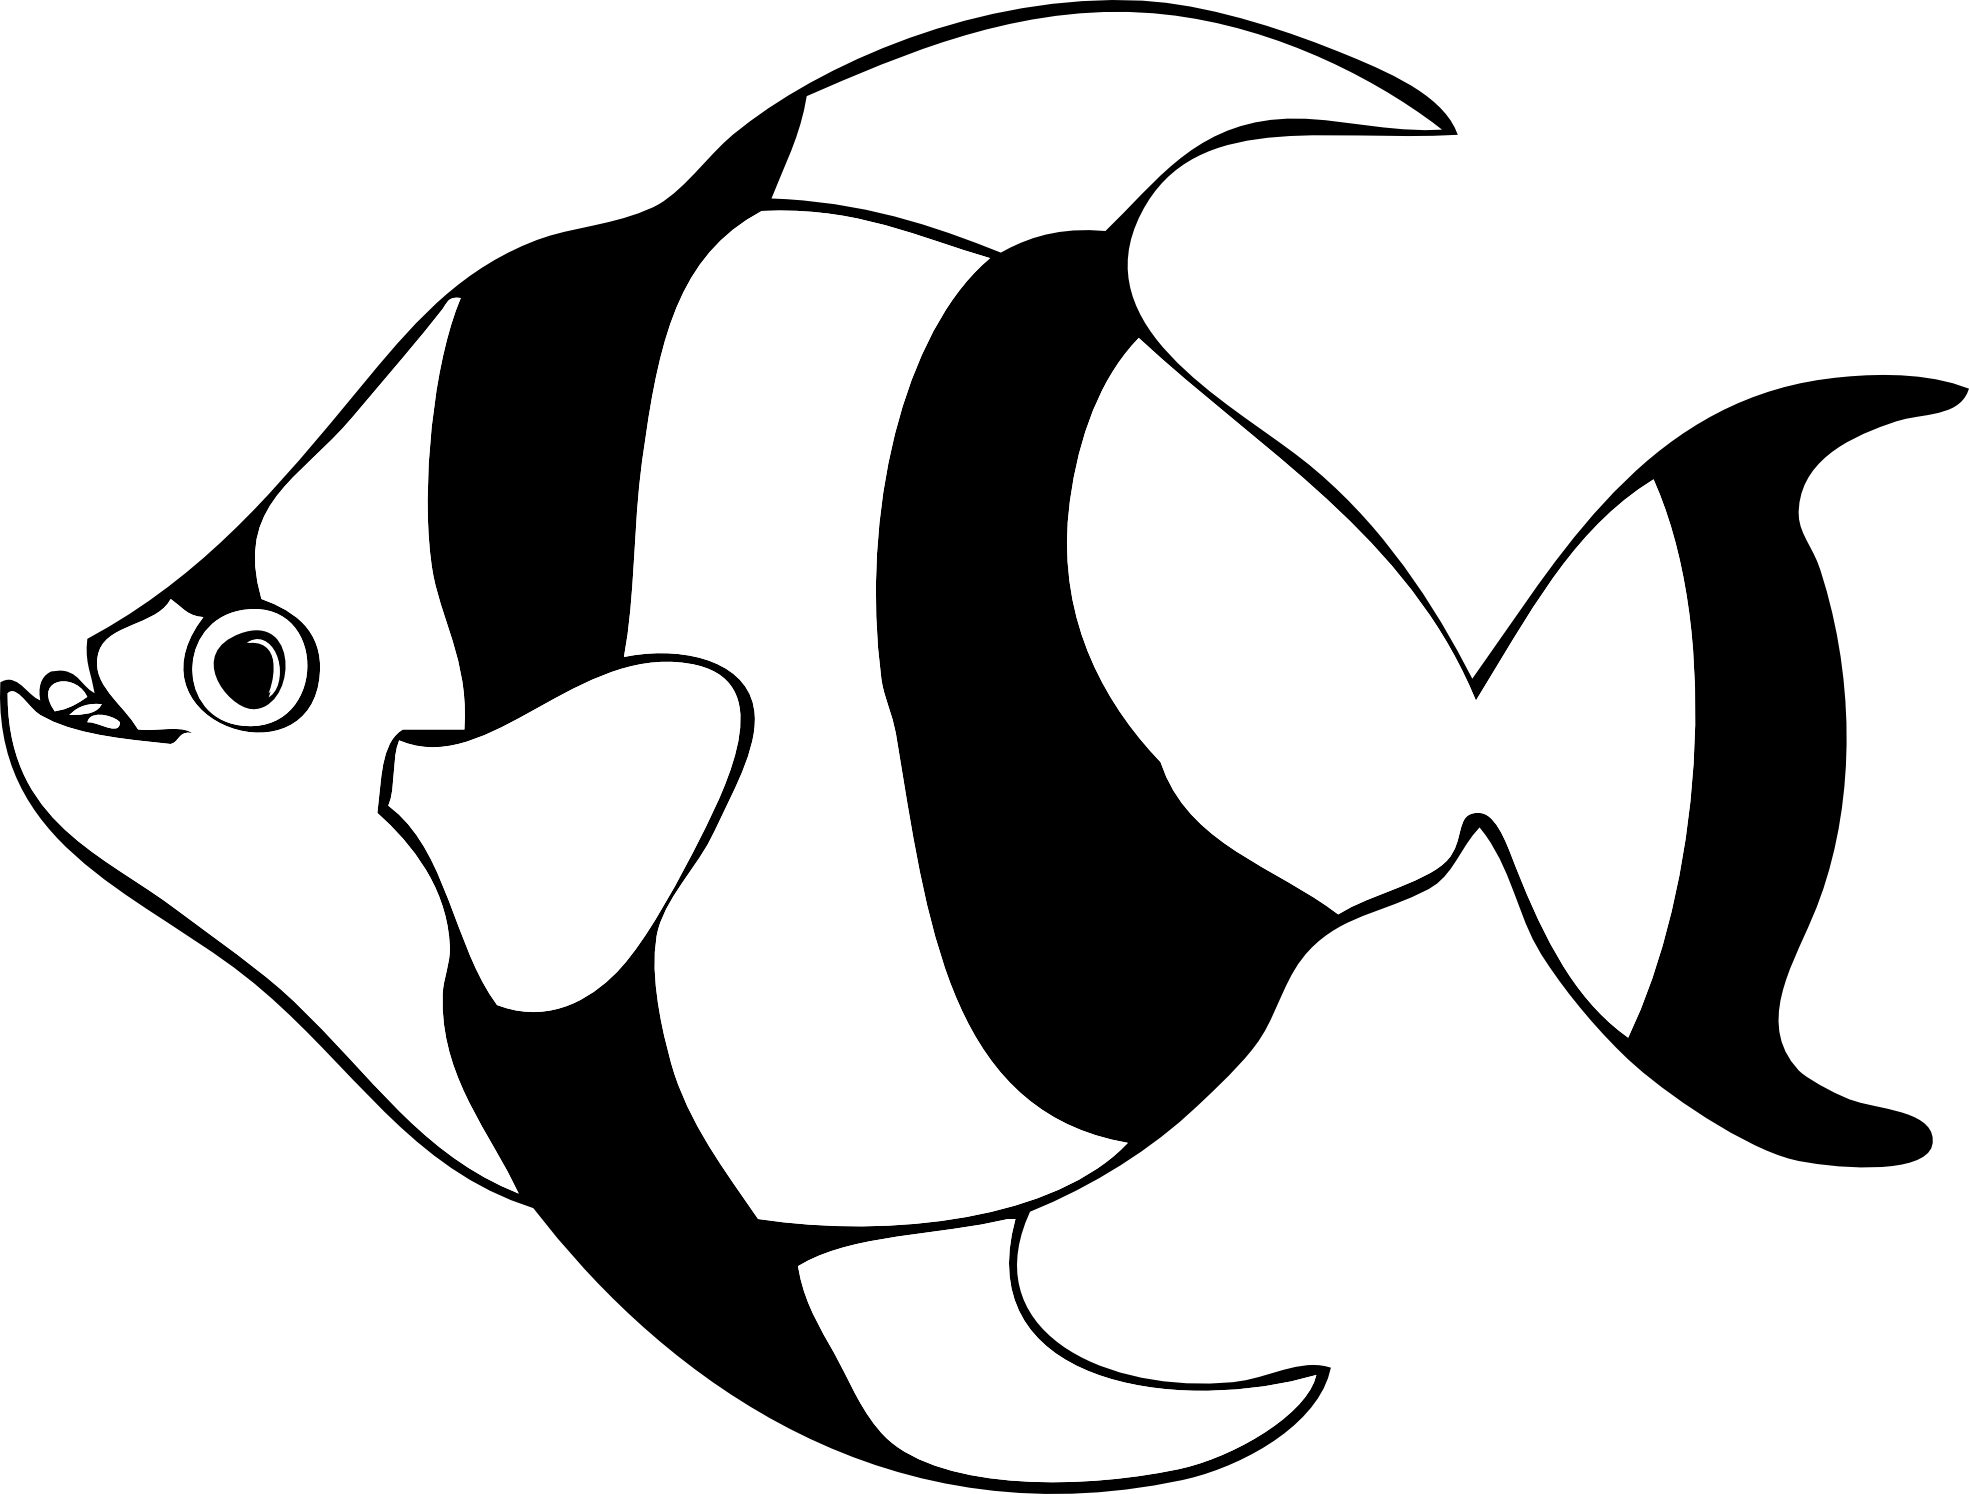 Fish clip art black and white. Clipart panda free images